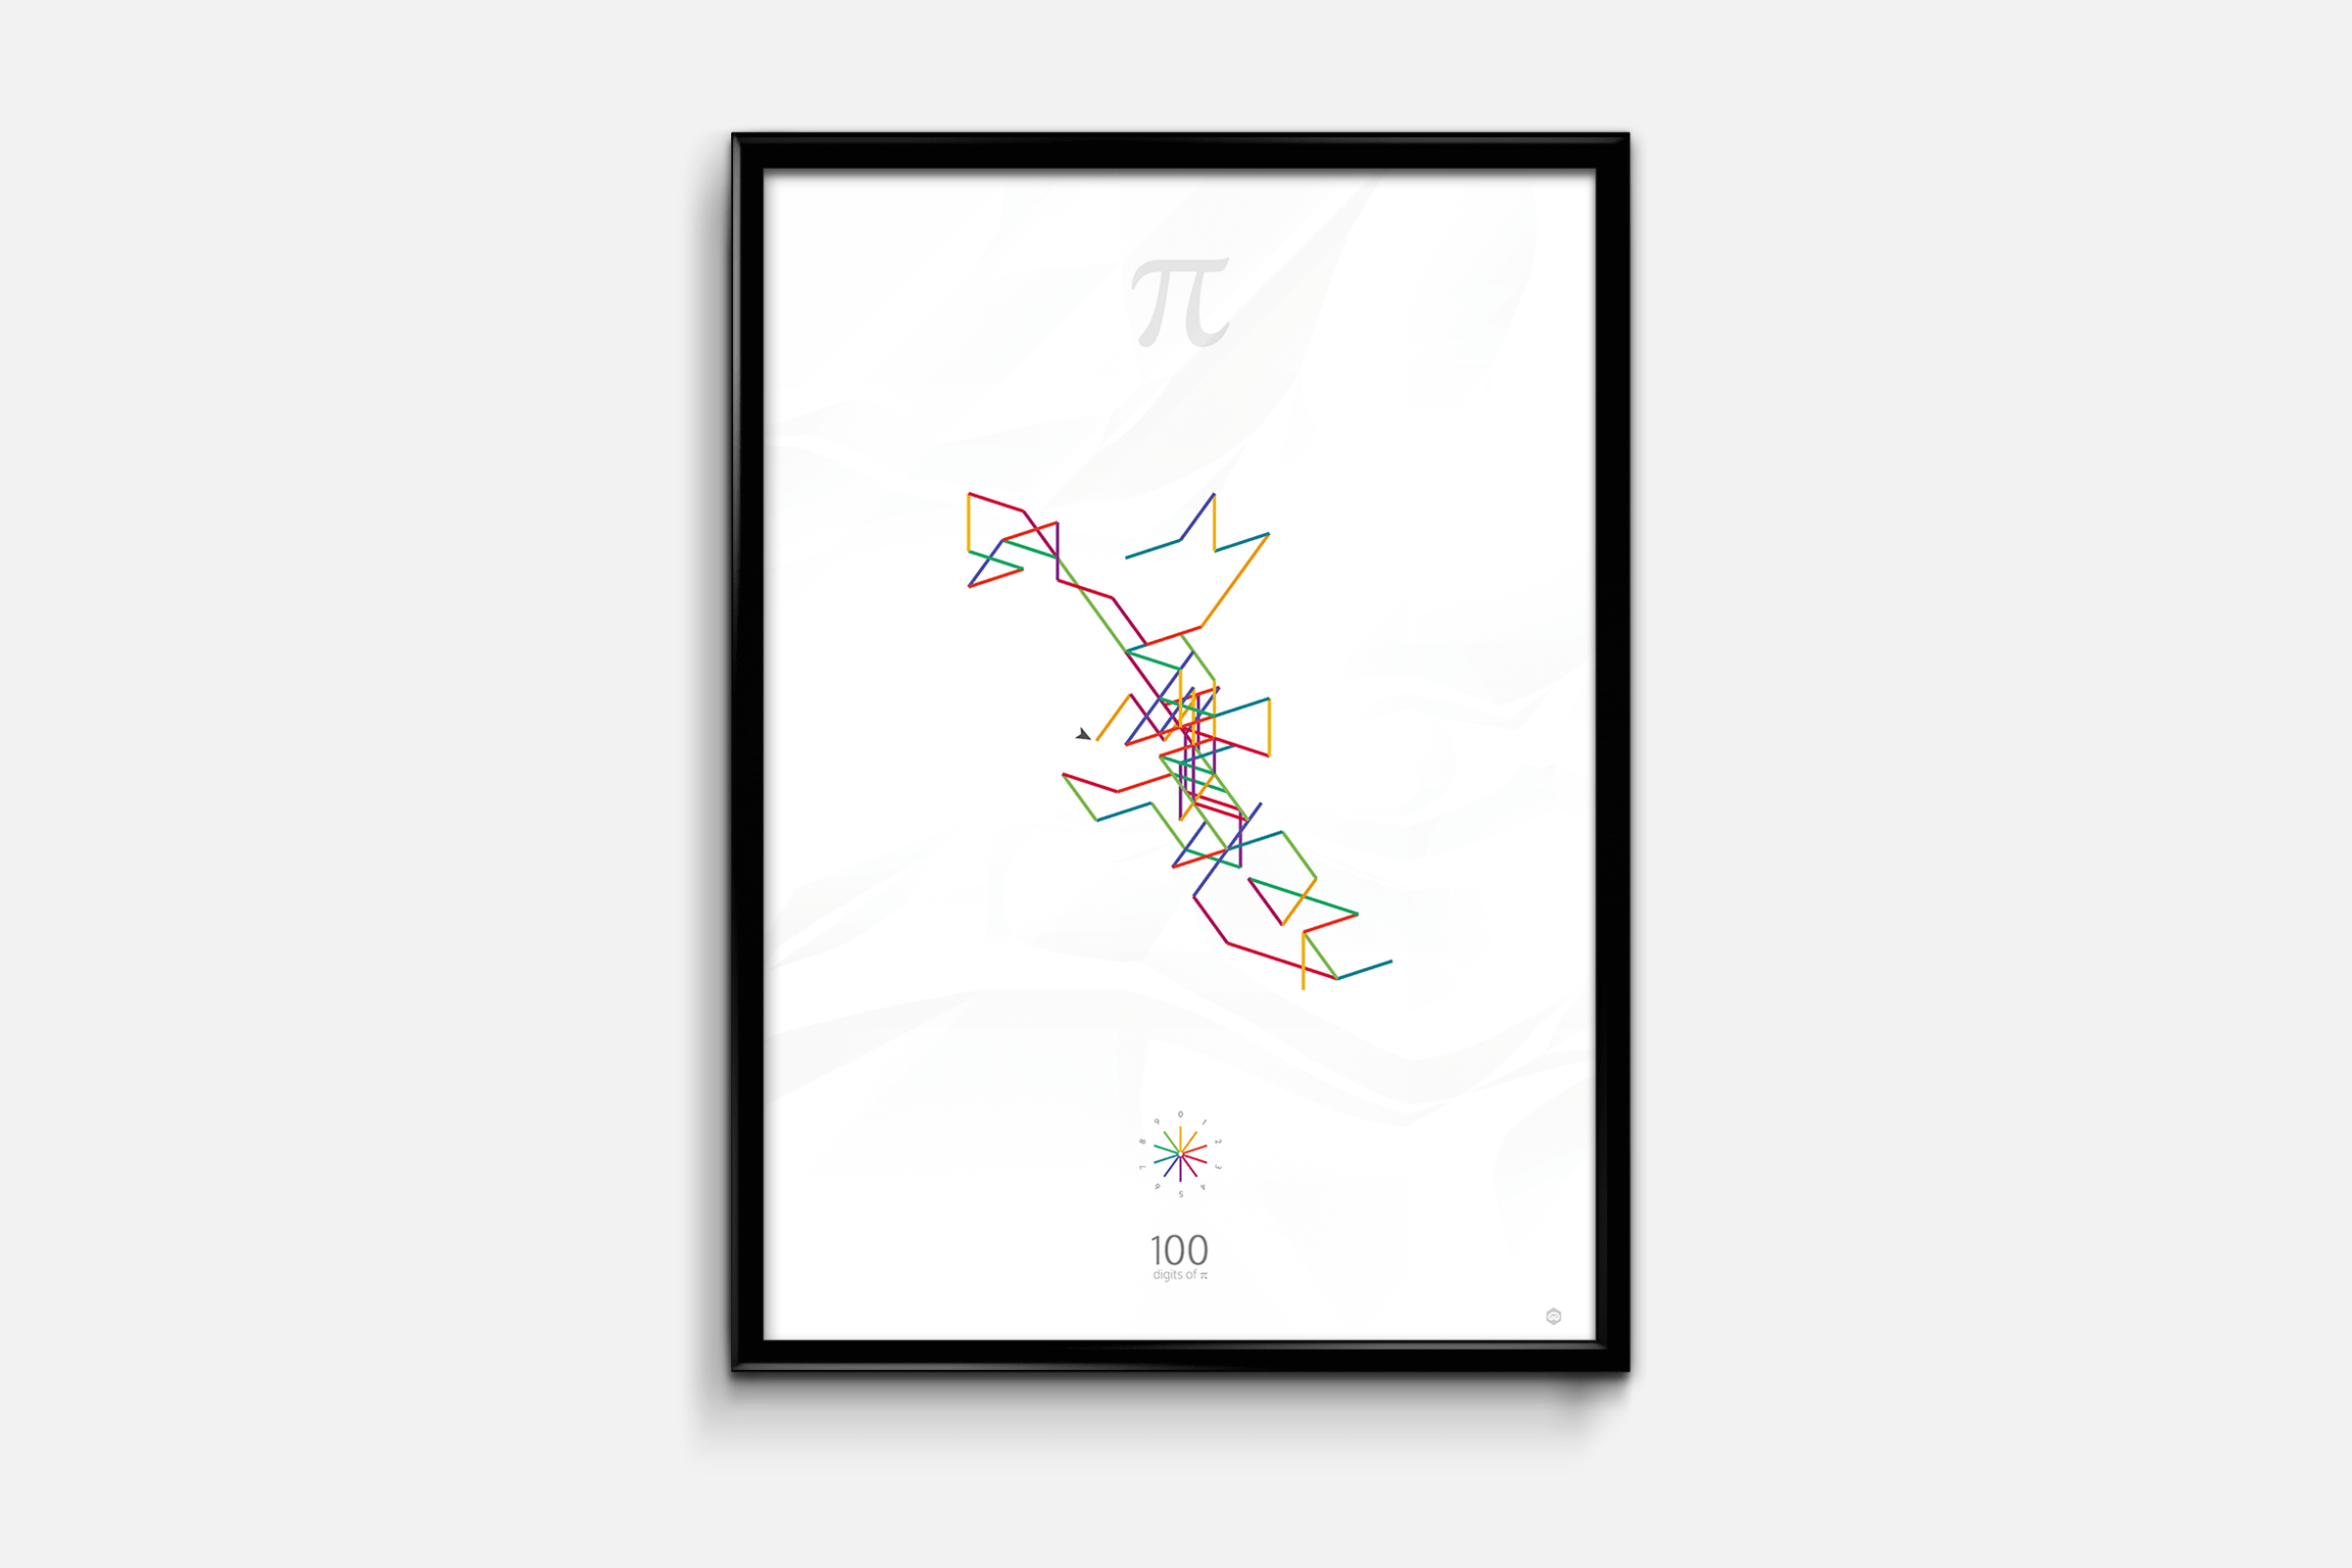 The poster of the first 100 digits of pi